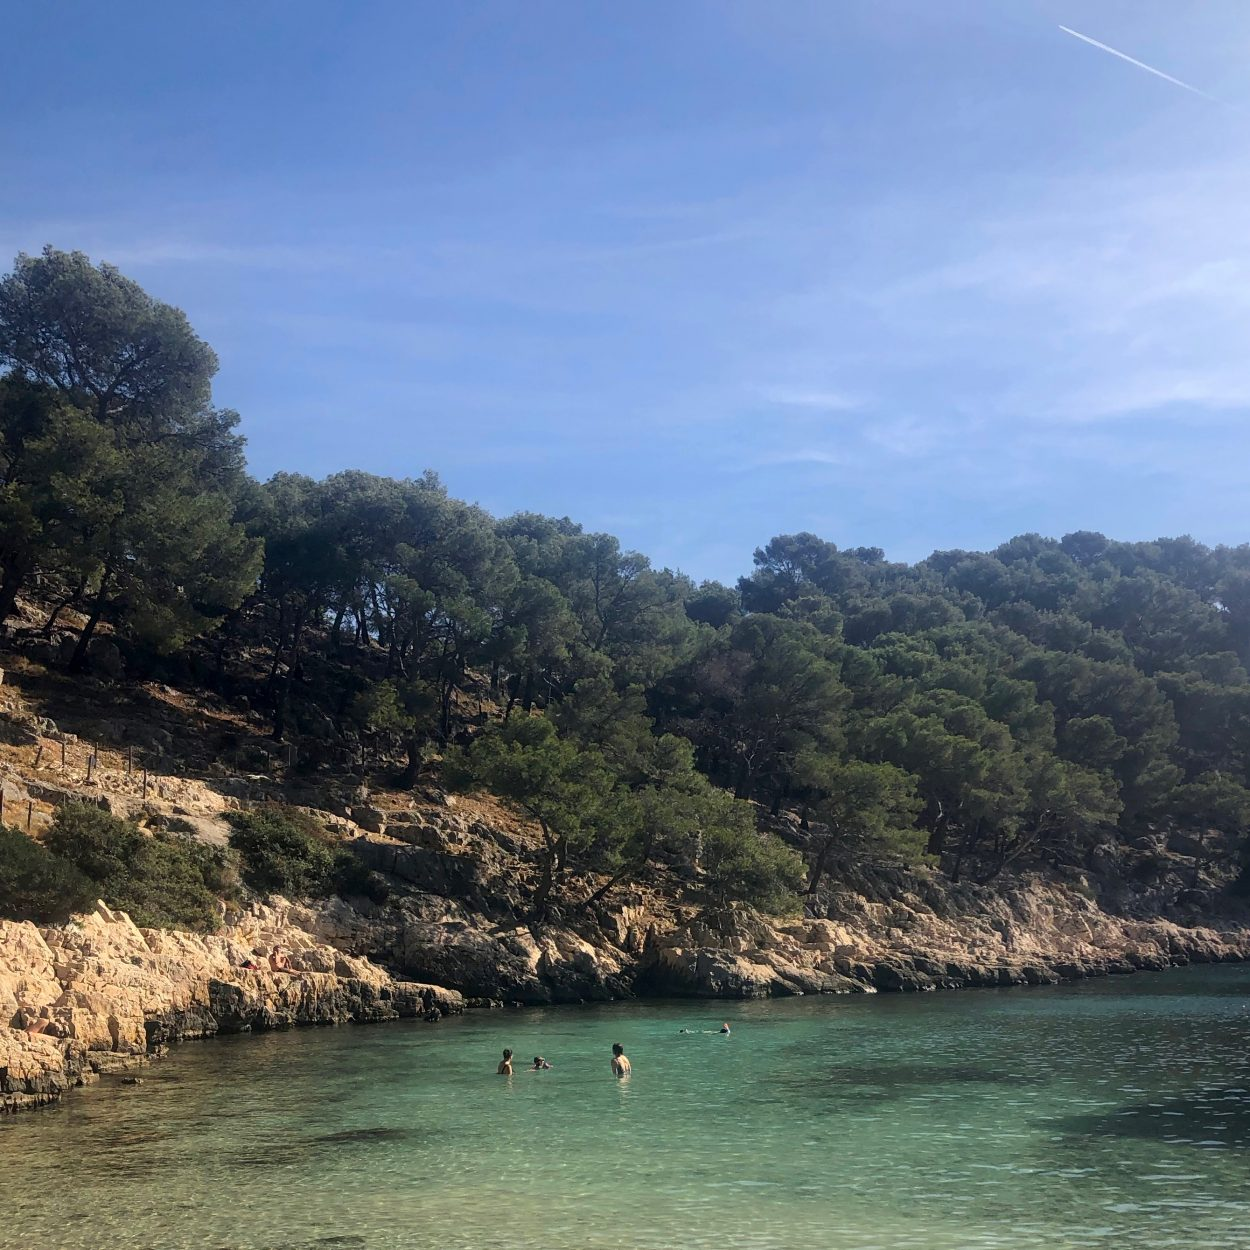 Swimming in Calanque de Port Pin in France